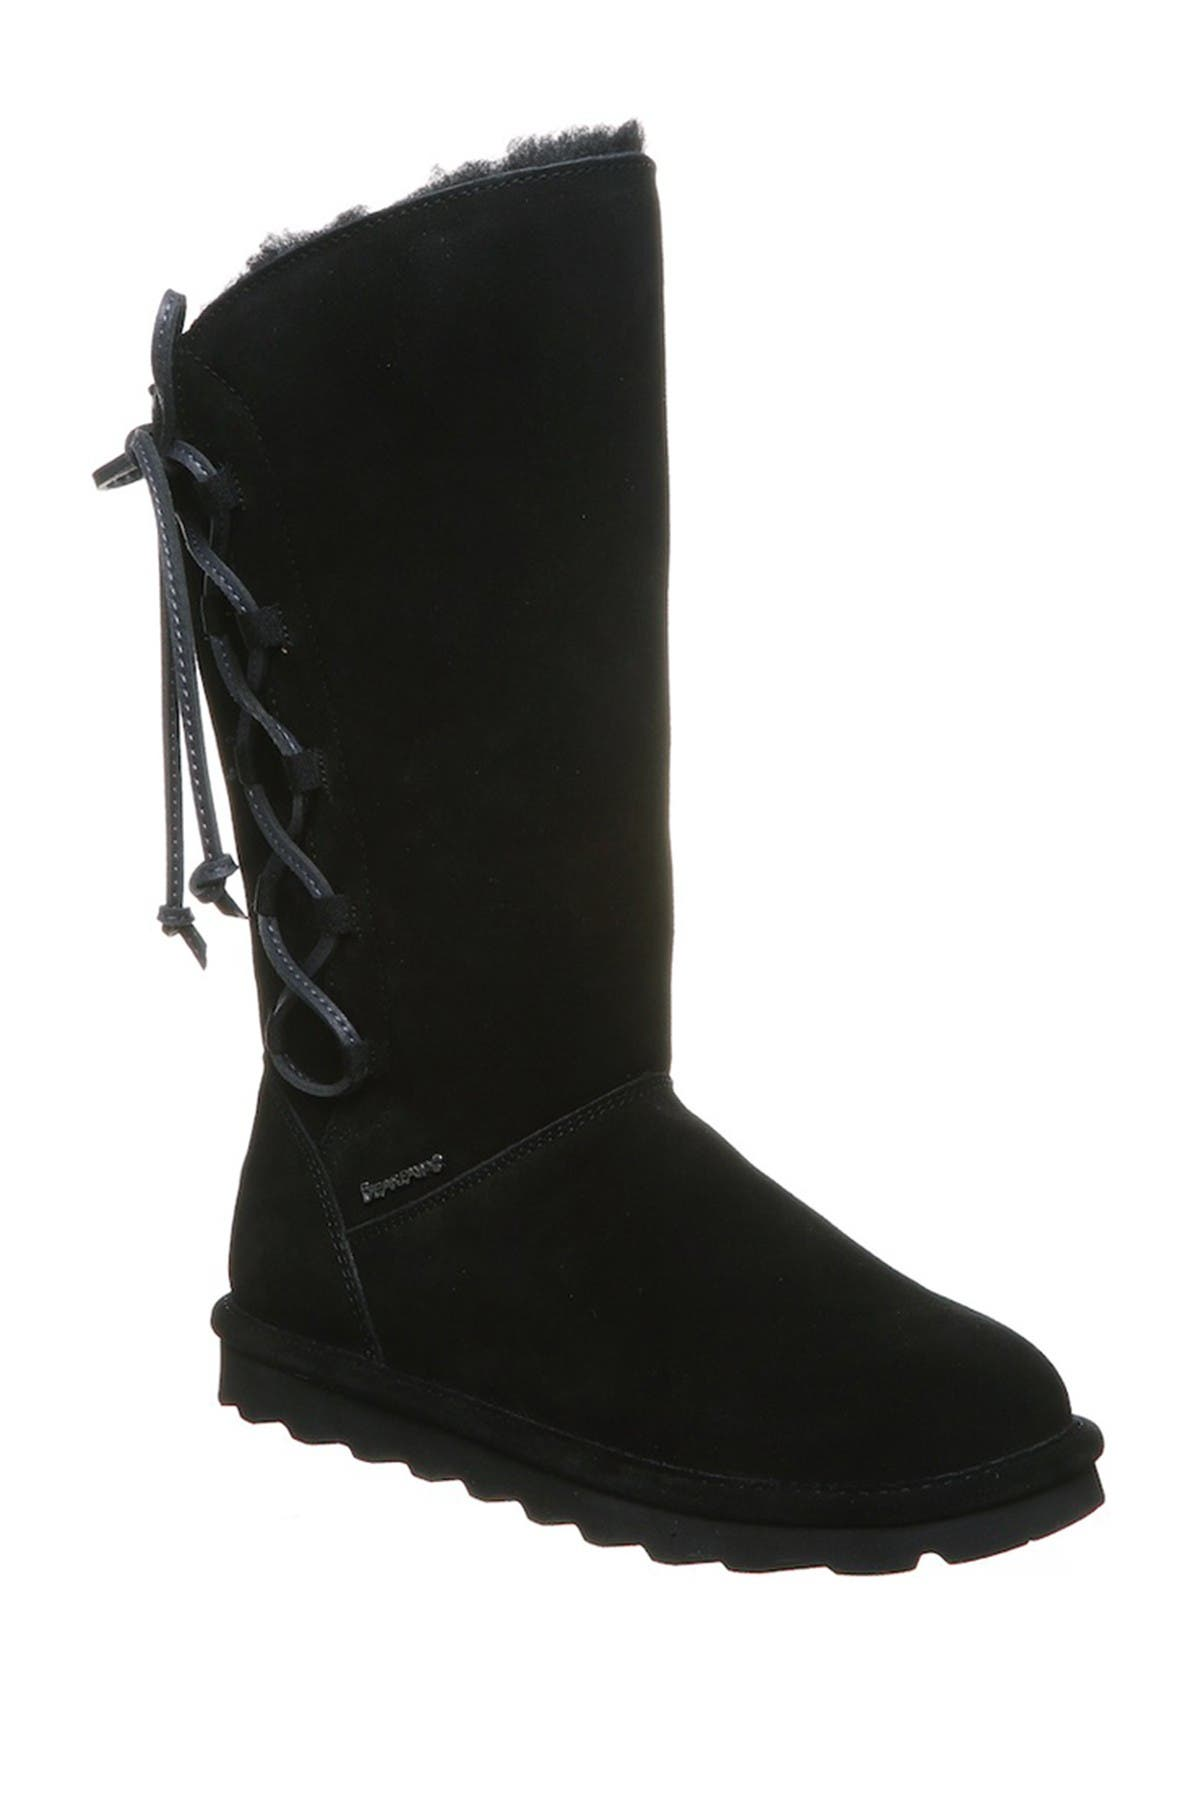 Image of BEARPAW Rita Faux Fur Lace-Up Boot